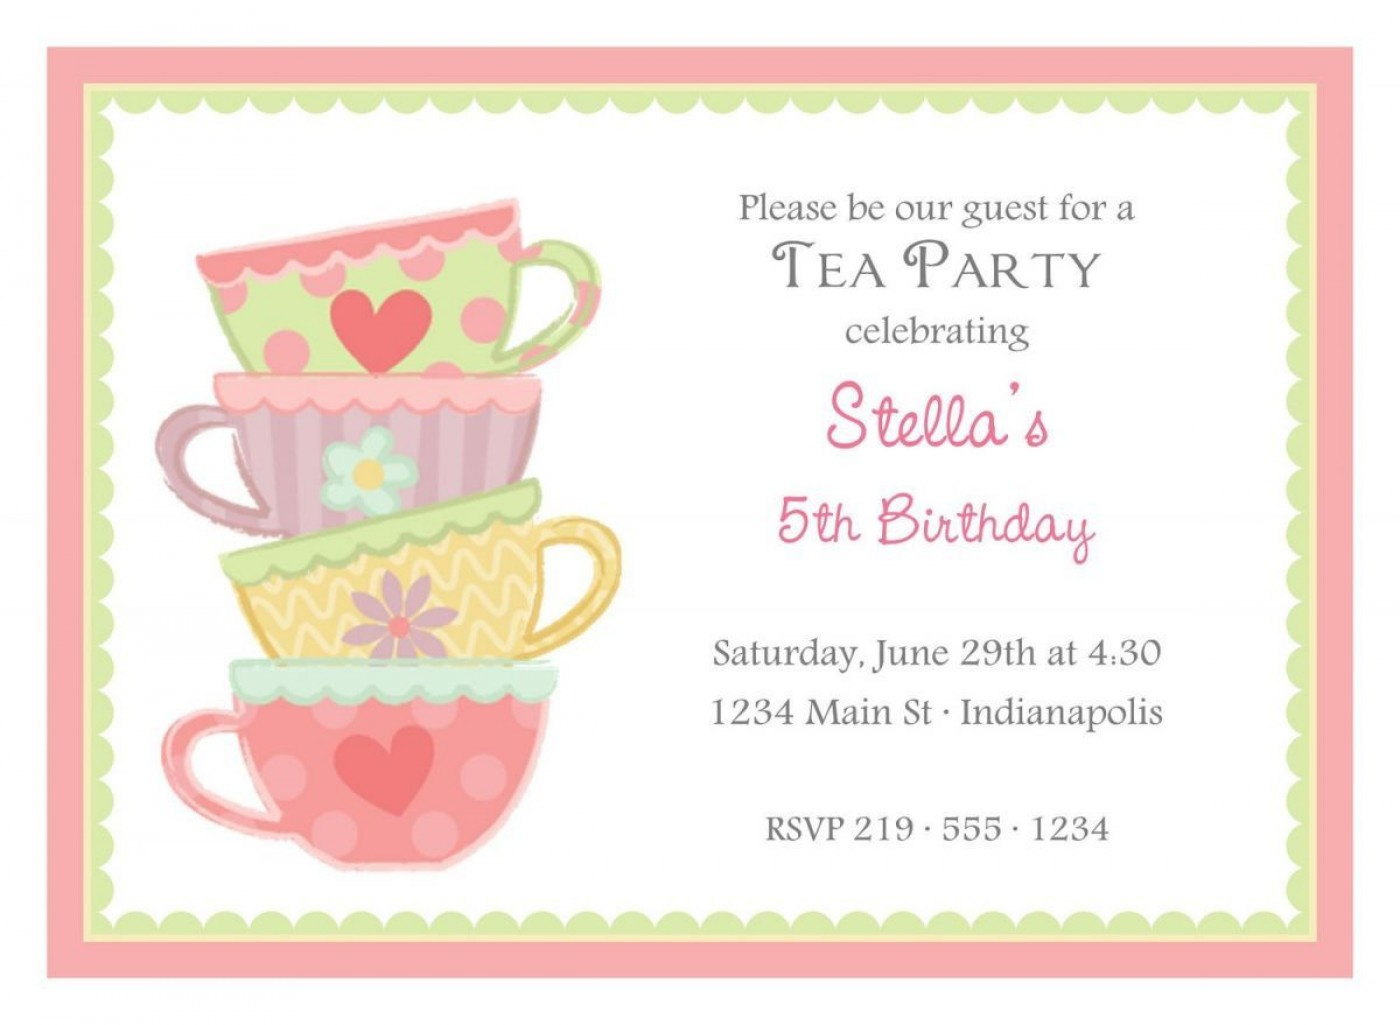 004 Dreaded Tea Party Invitation Template Free Example  Vintage Princes Printable1400